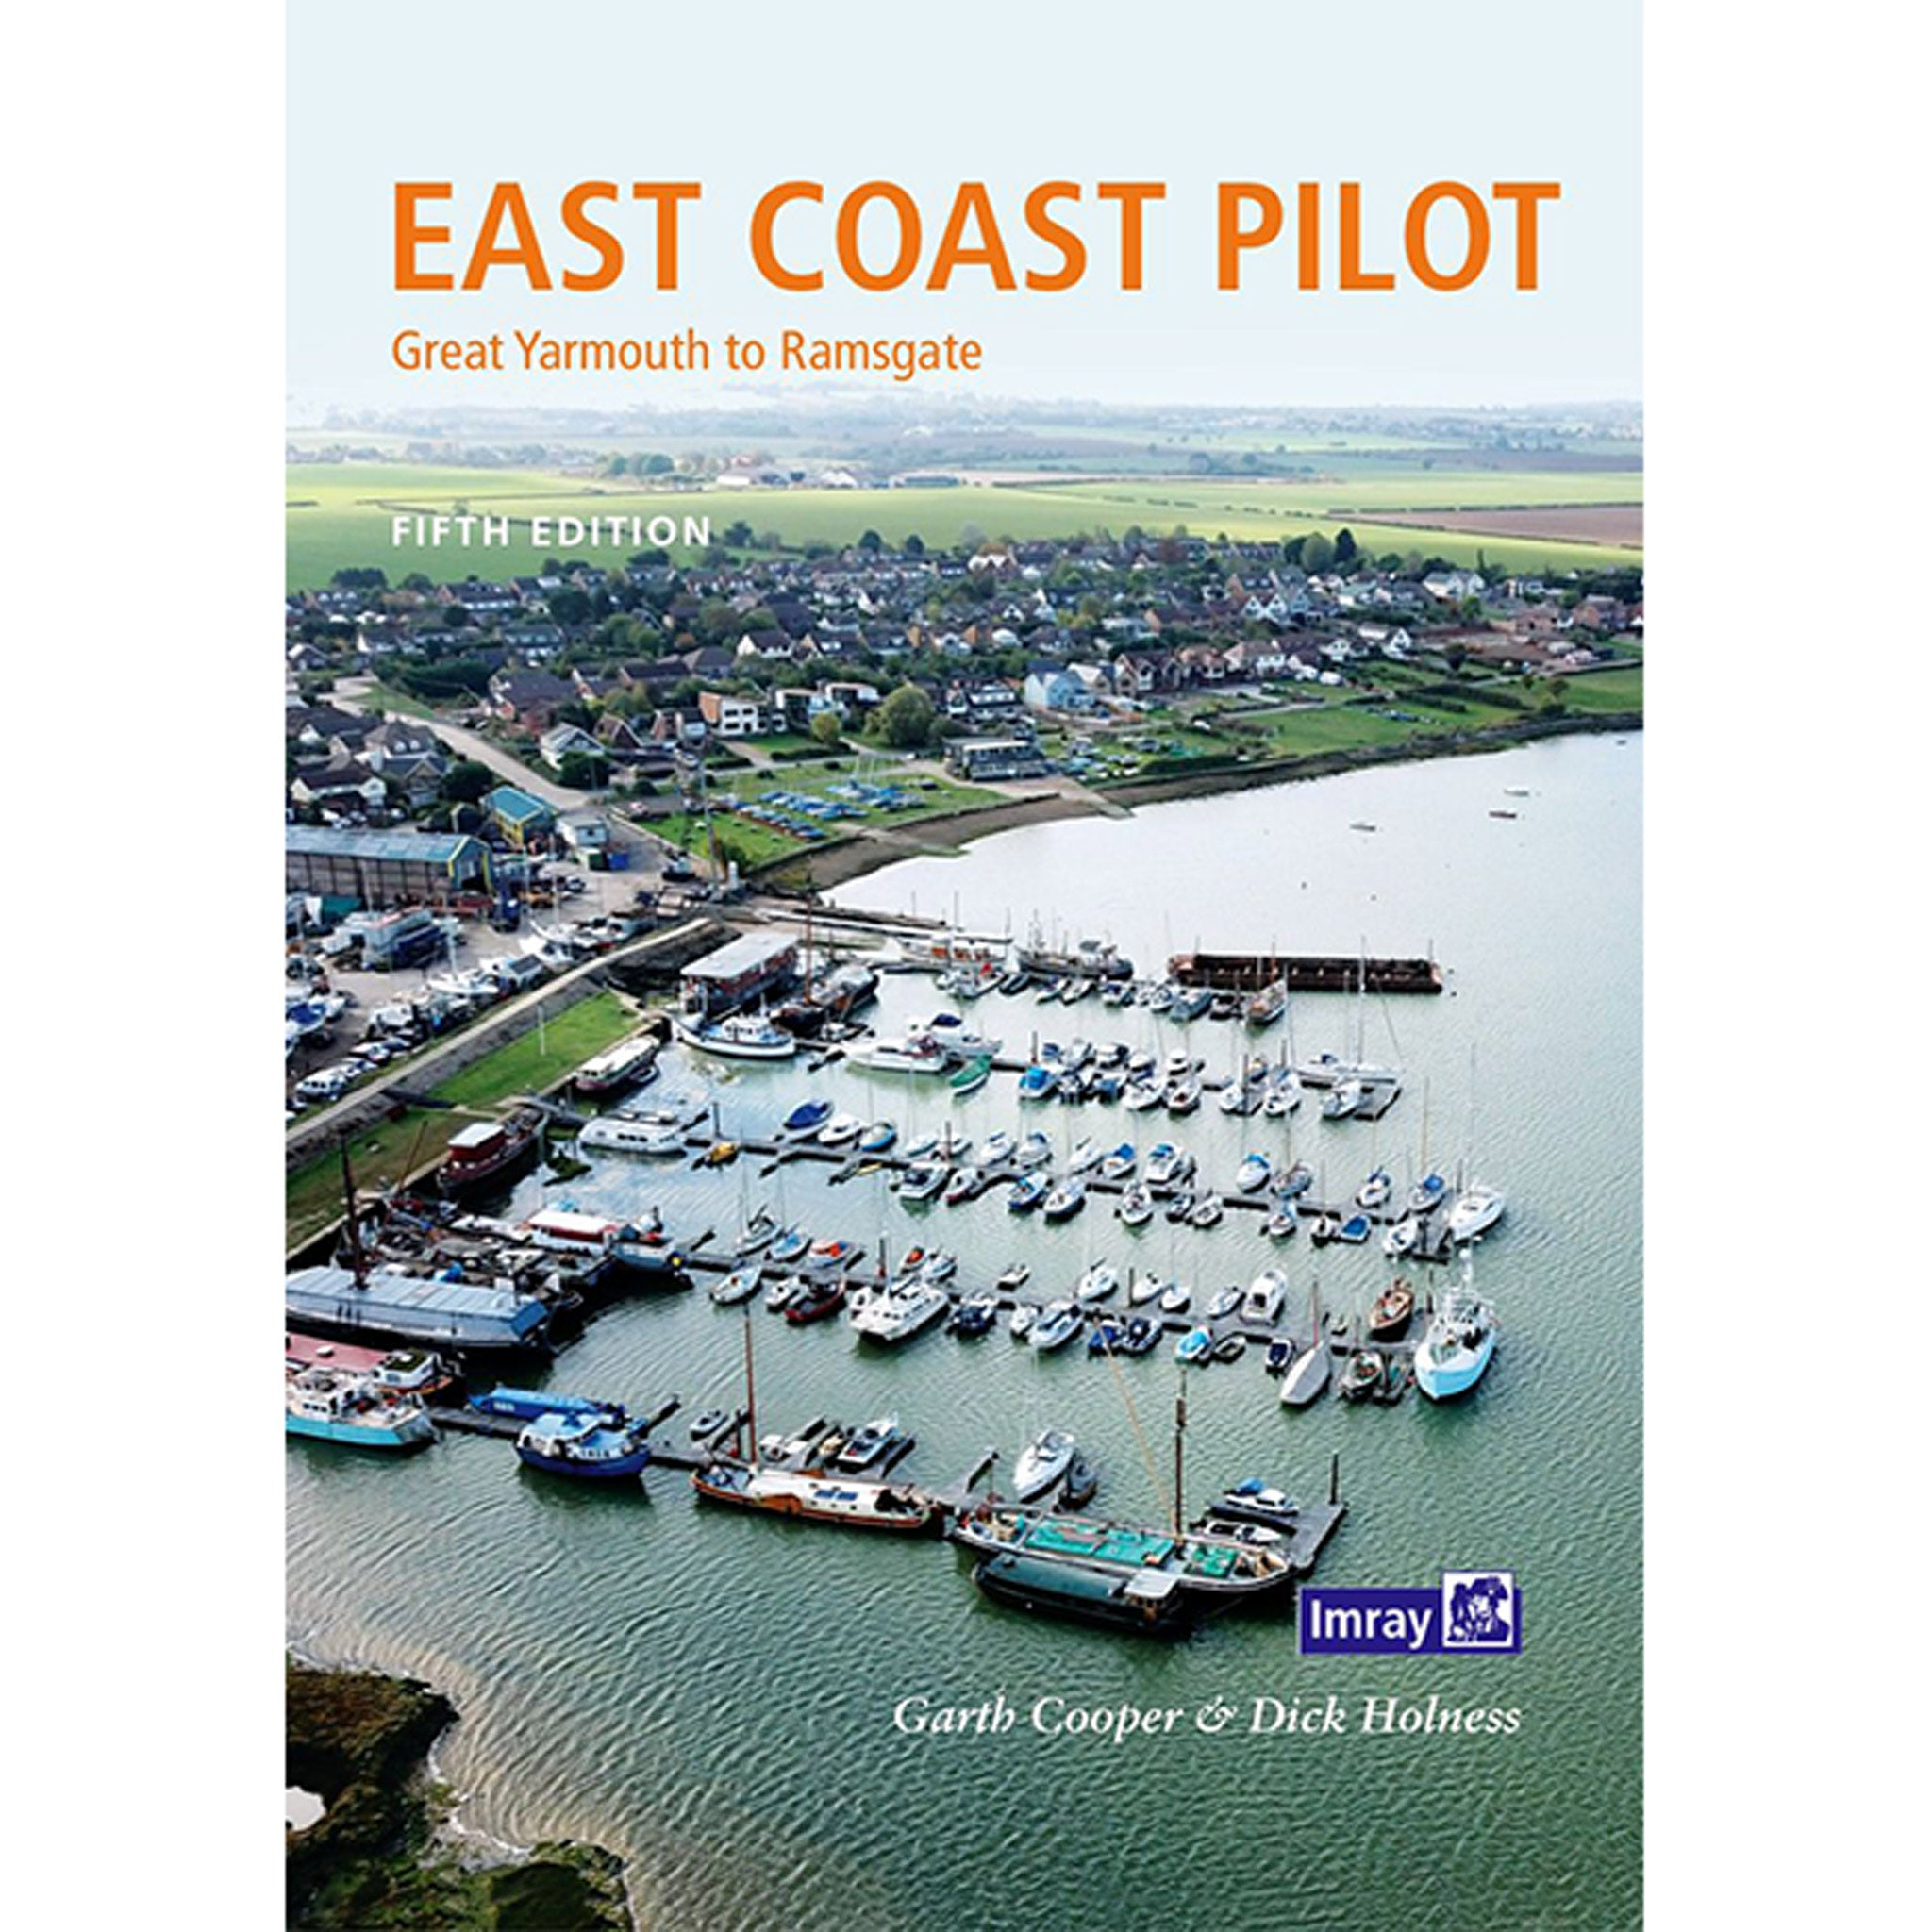 East Coast Pilot : Great Yarmouth to Ramsgate